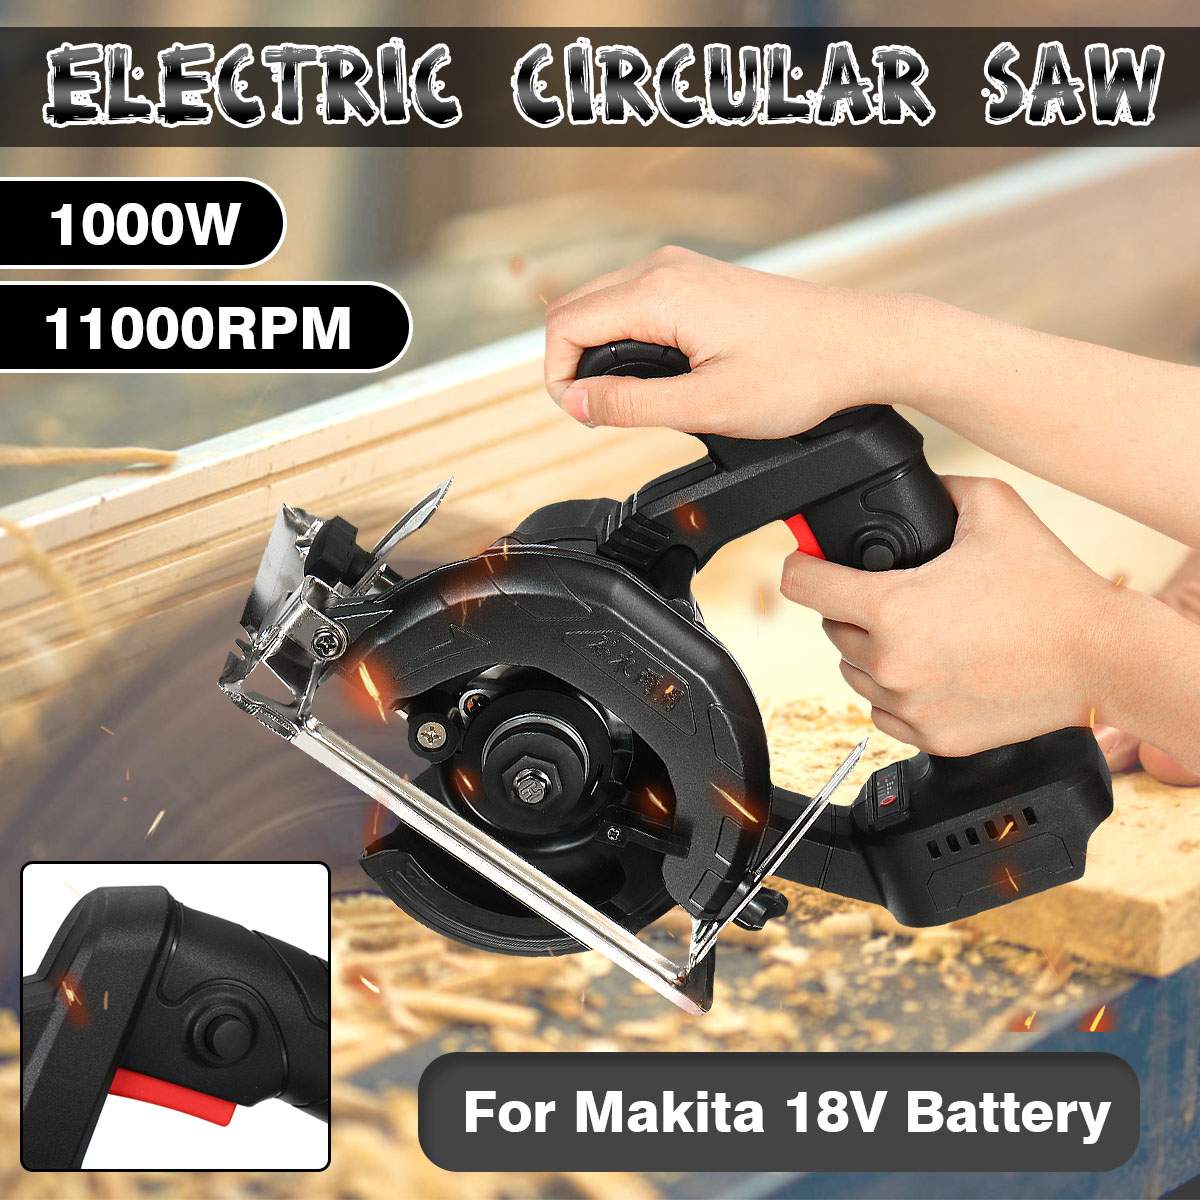 Brushless 125mm Circular Electric Saw Handle Power Tools 1000w 11000RPM Woodworking Cutting Machine For Makita 18V Battery